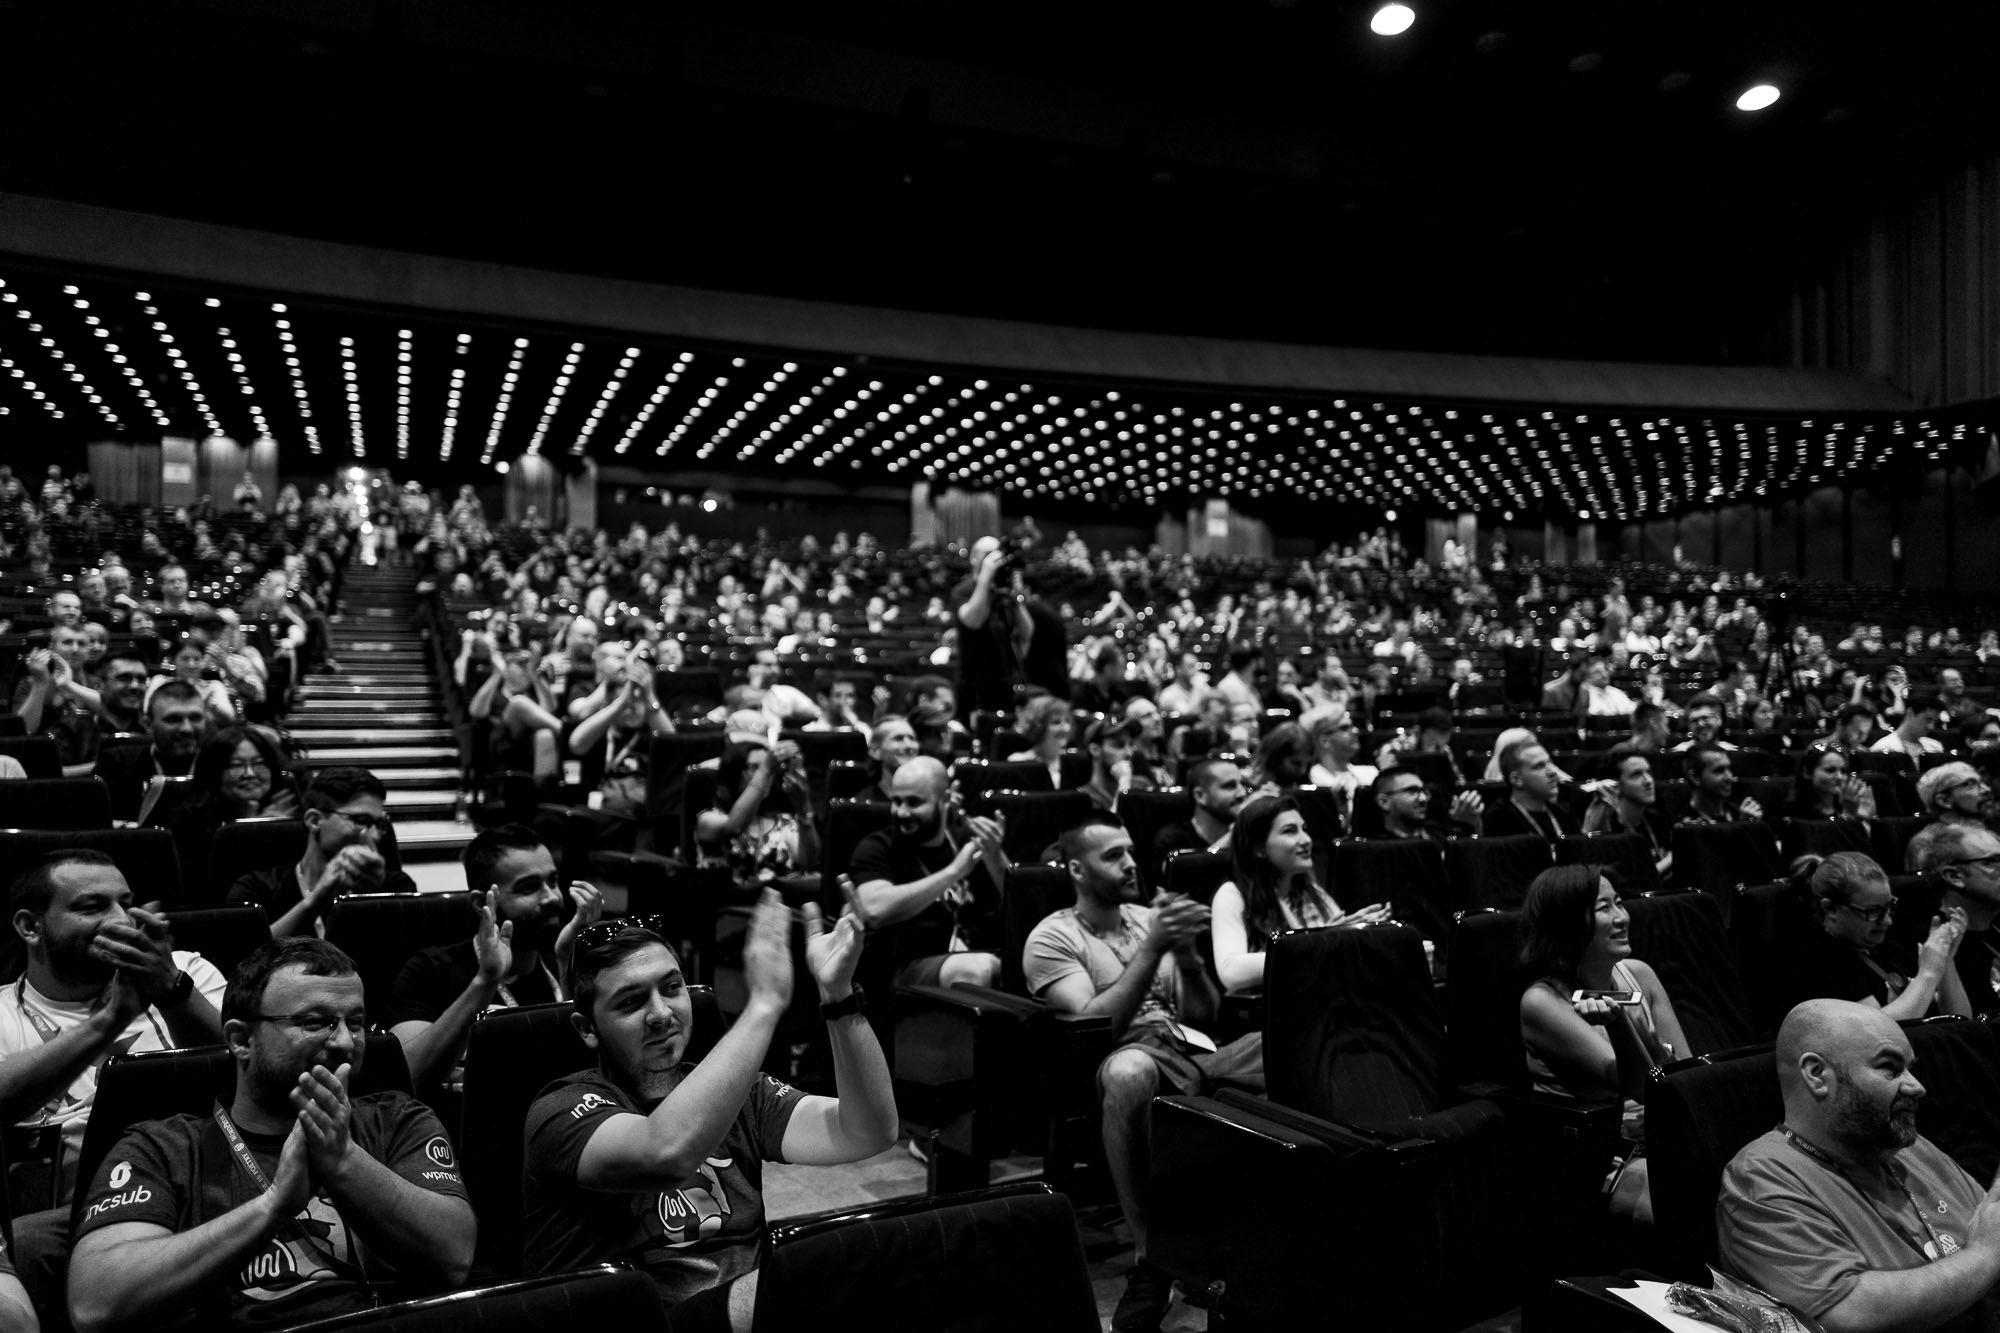 The audience in the Milkyway auditorium applauding